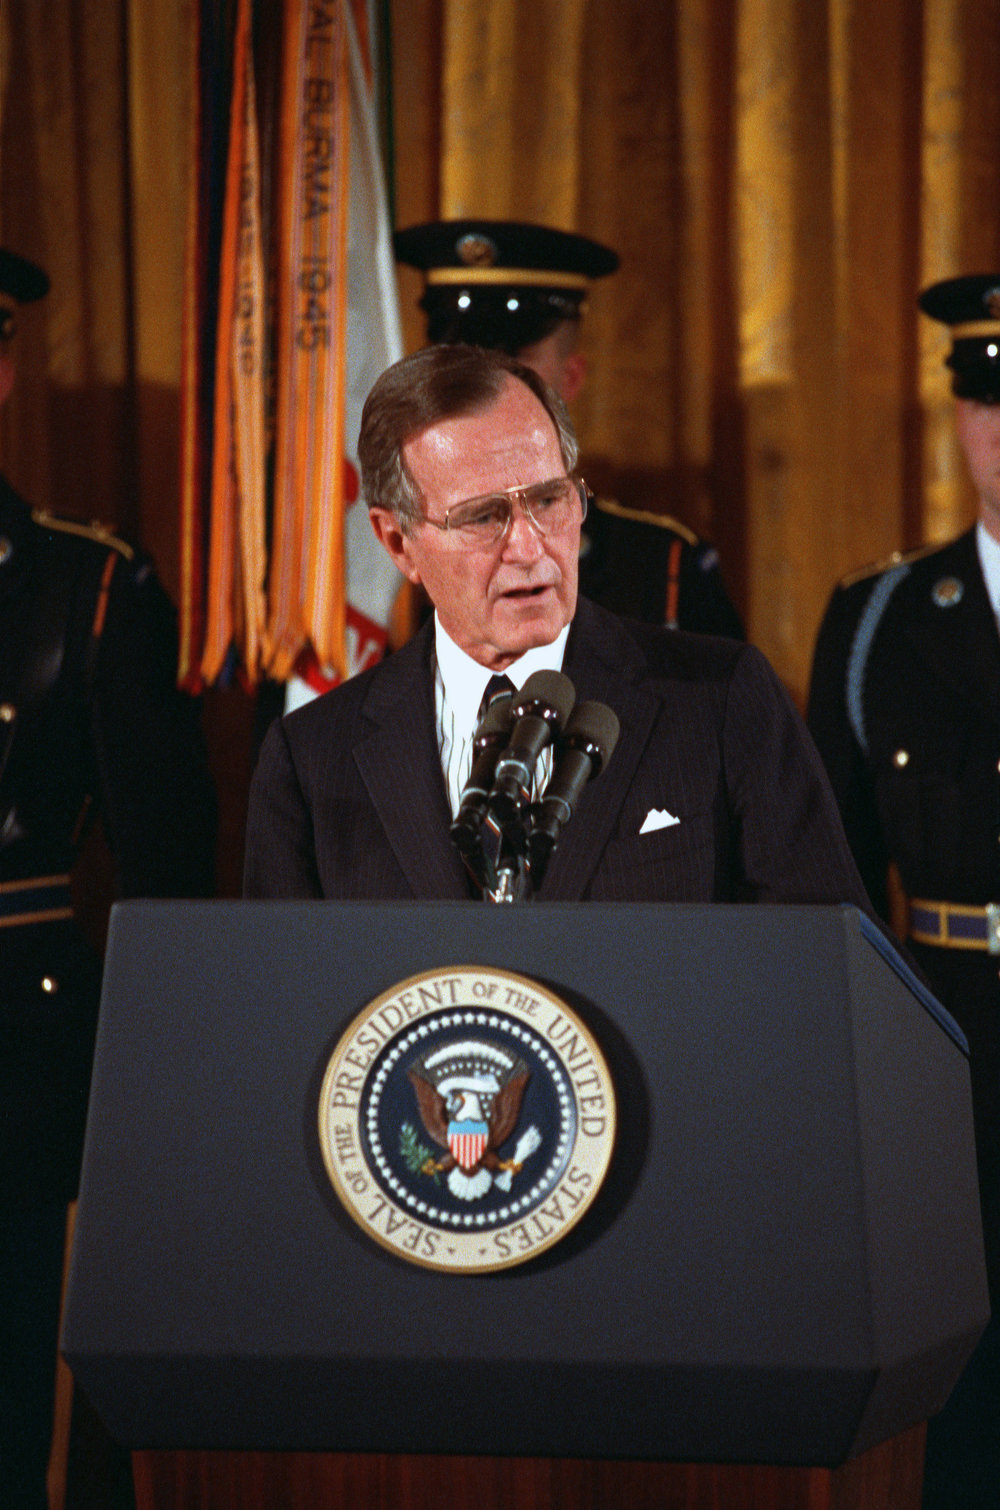 President George H. W. Bush presented a posthumous Medal of Honor to the sisters of Army Cpl. Freddie Stowers, a native of Anderson County, S.C., for action during World War I at the White House in Washington, D.C., April 4, 1991. Stowers displayed exceptional heroism on Sept. 28, 1918, as a squad leader in Company C, 371st Infantry Regiment, 93rd Infantry Division. His unit devastated by the enemy, with bold personal bravery and leadership he took charge, inspired his men to follow him into the fray, taking out a machine gun nest. Fatally wounded by gunfire, with his inspiration, Company C pressed its attack against incredible odds, aiding in the capture of Hill 188, causing heavy enemy casualties. Stowers is the only Black American to receive the medal for action during World War I. (DoD photo by Robert Ward)